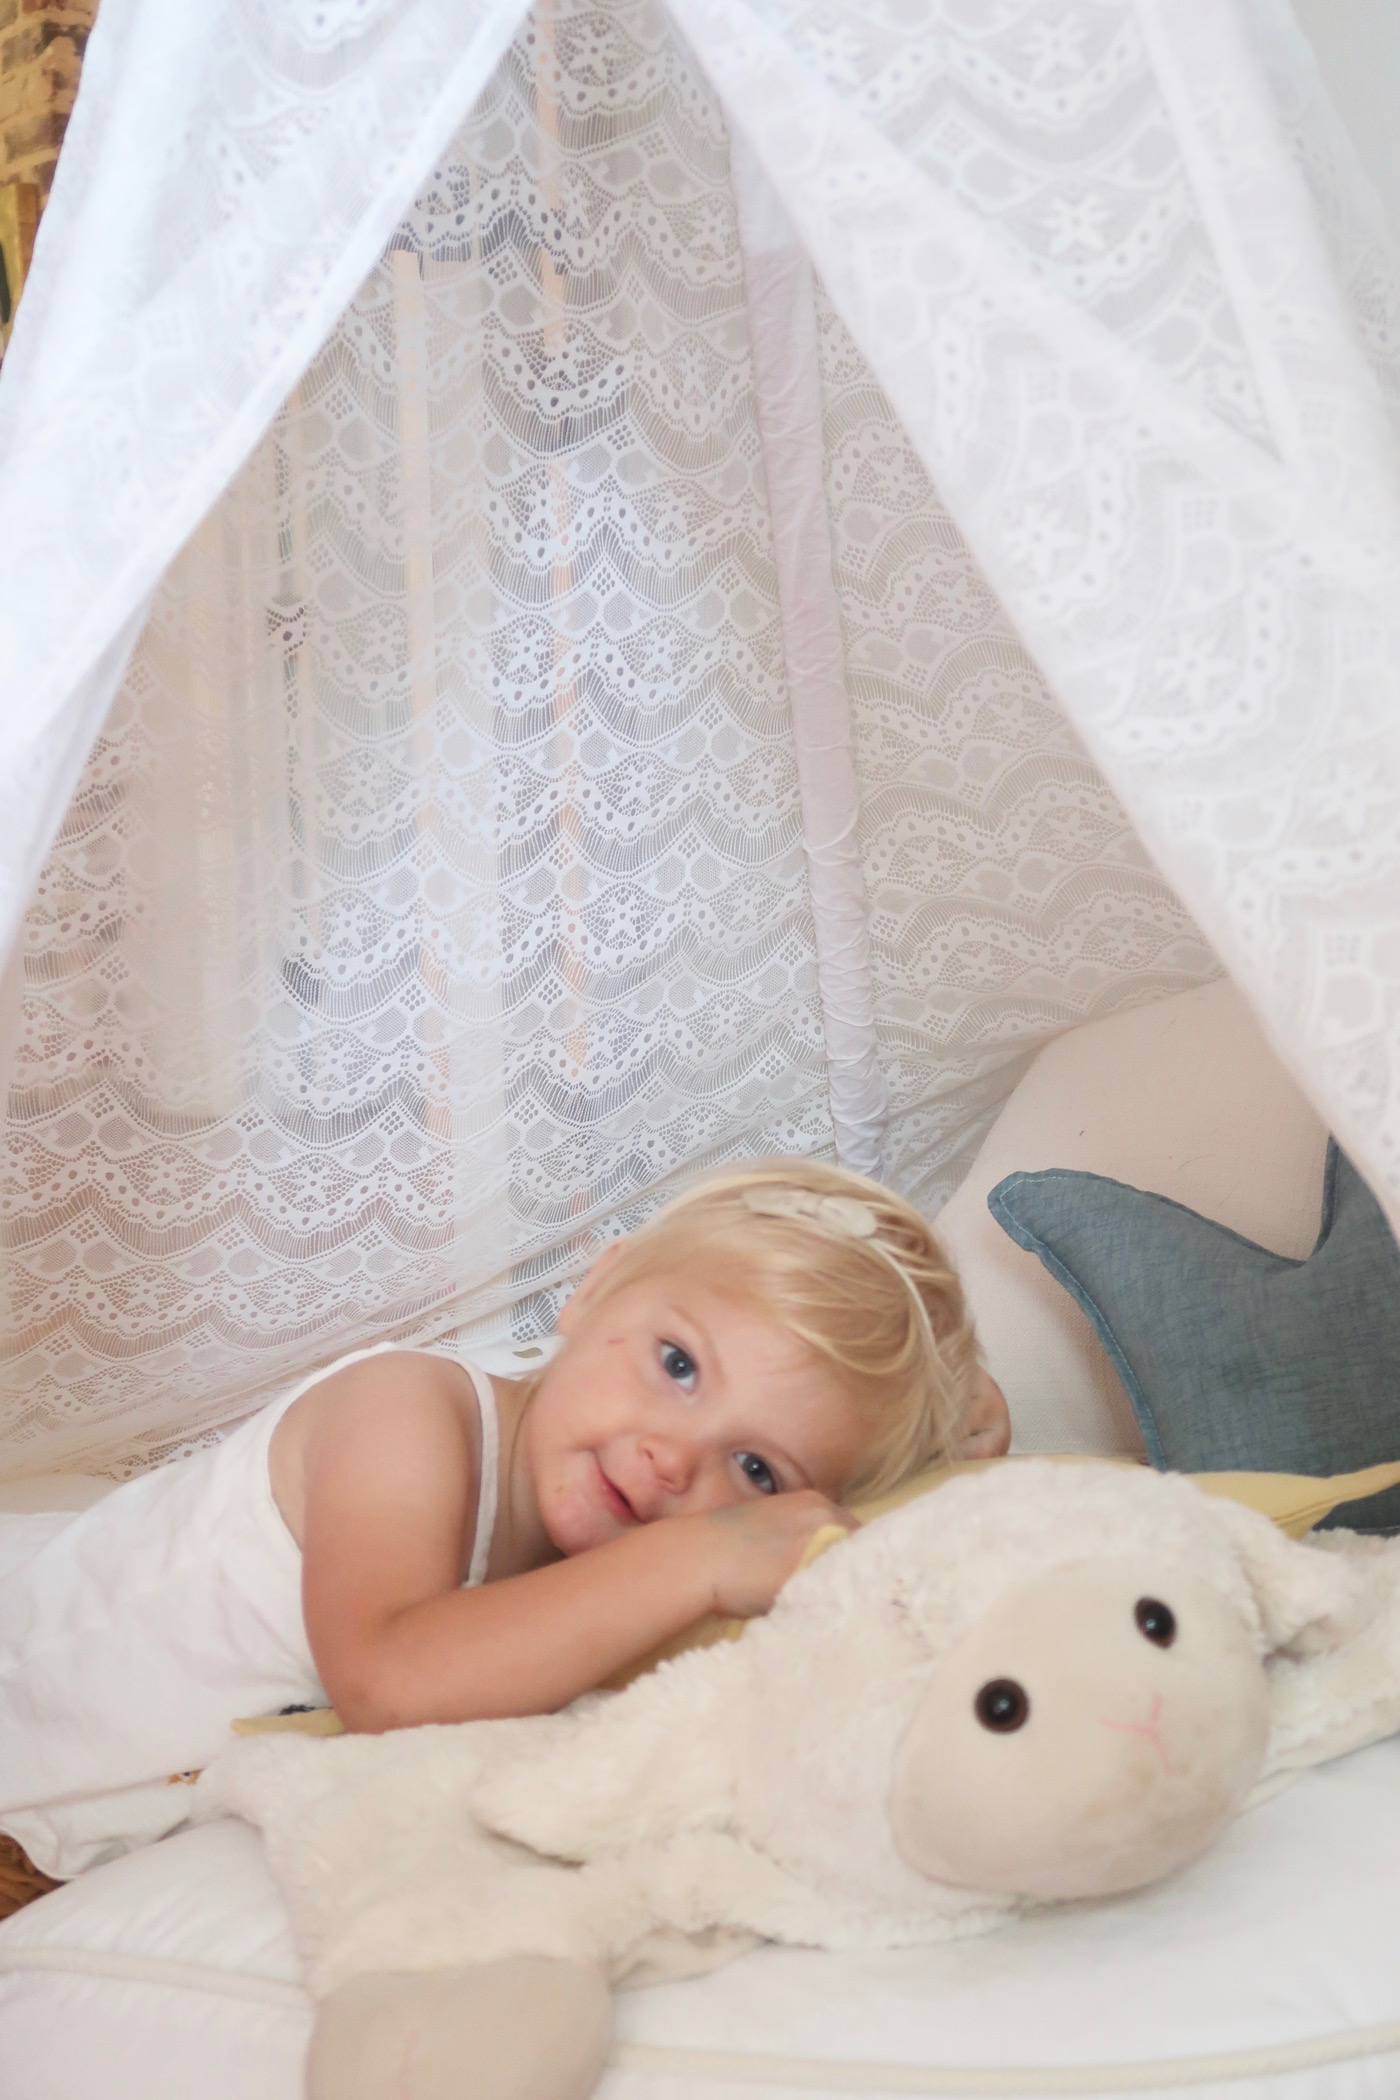 Teepee Joy: Handmade teepees and accessories for boys and girls // www.thehiveblog.com